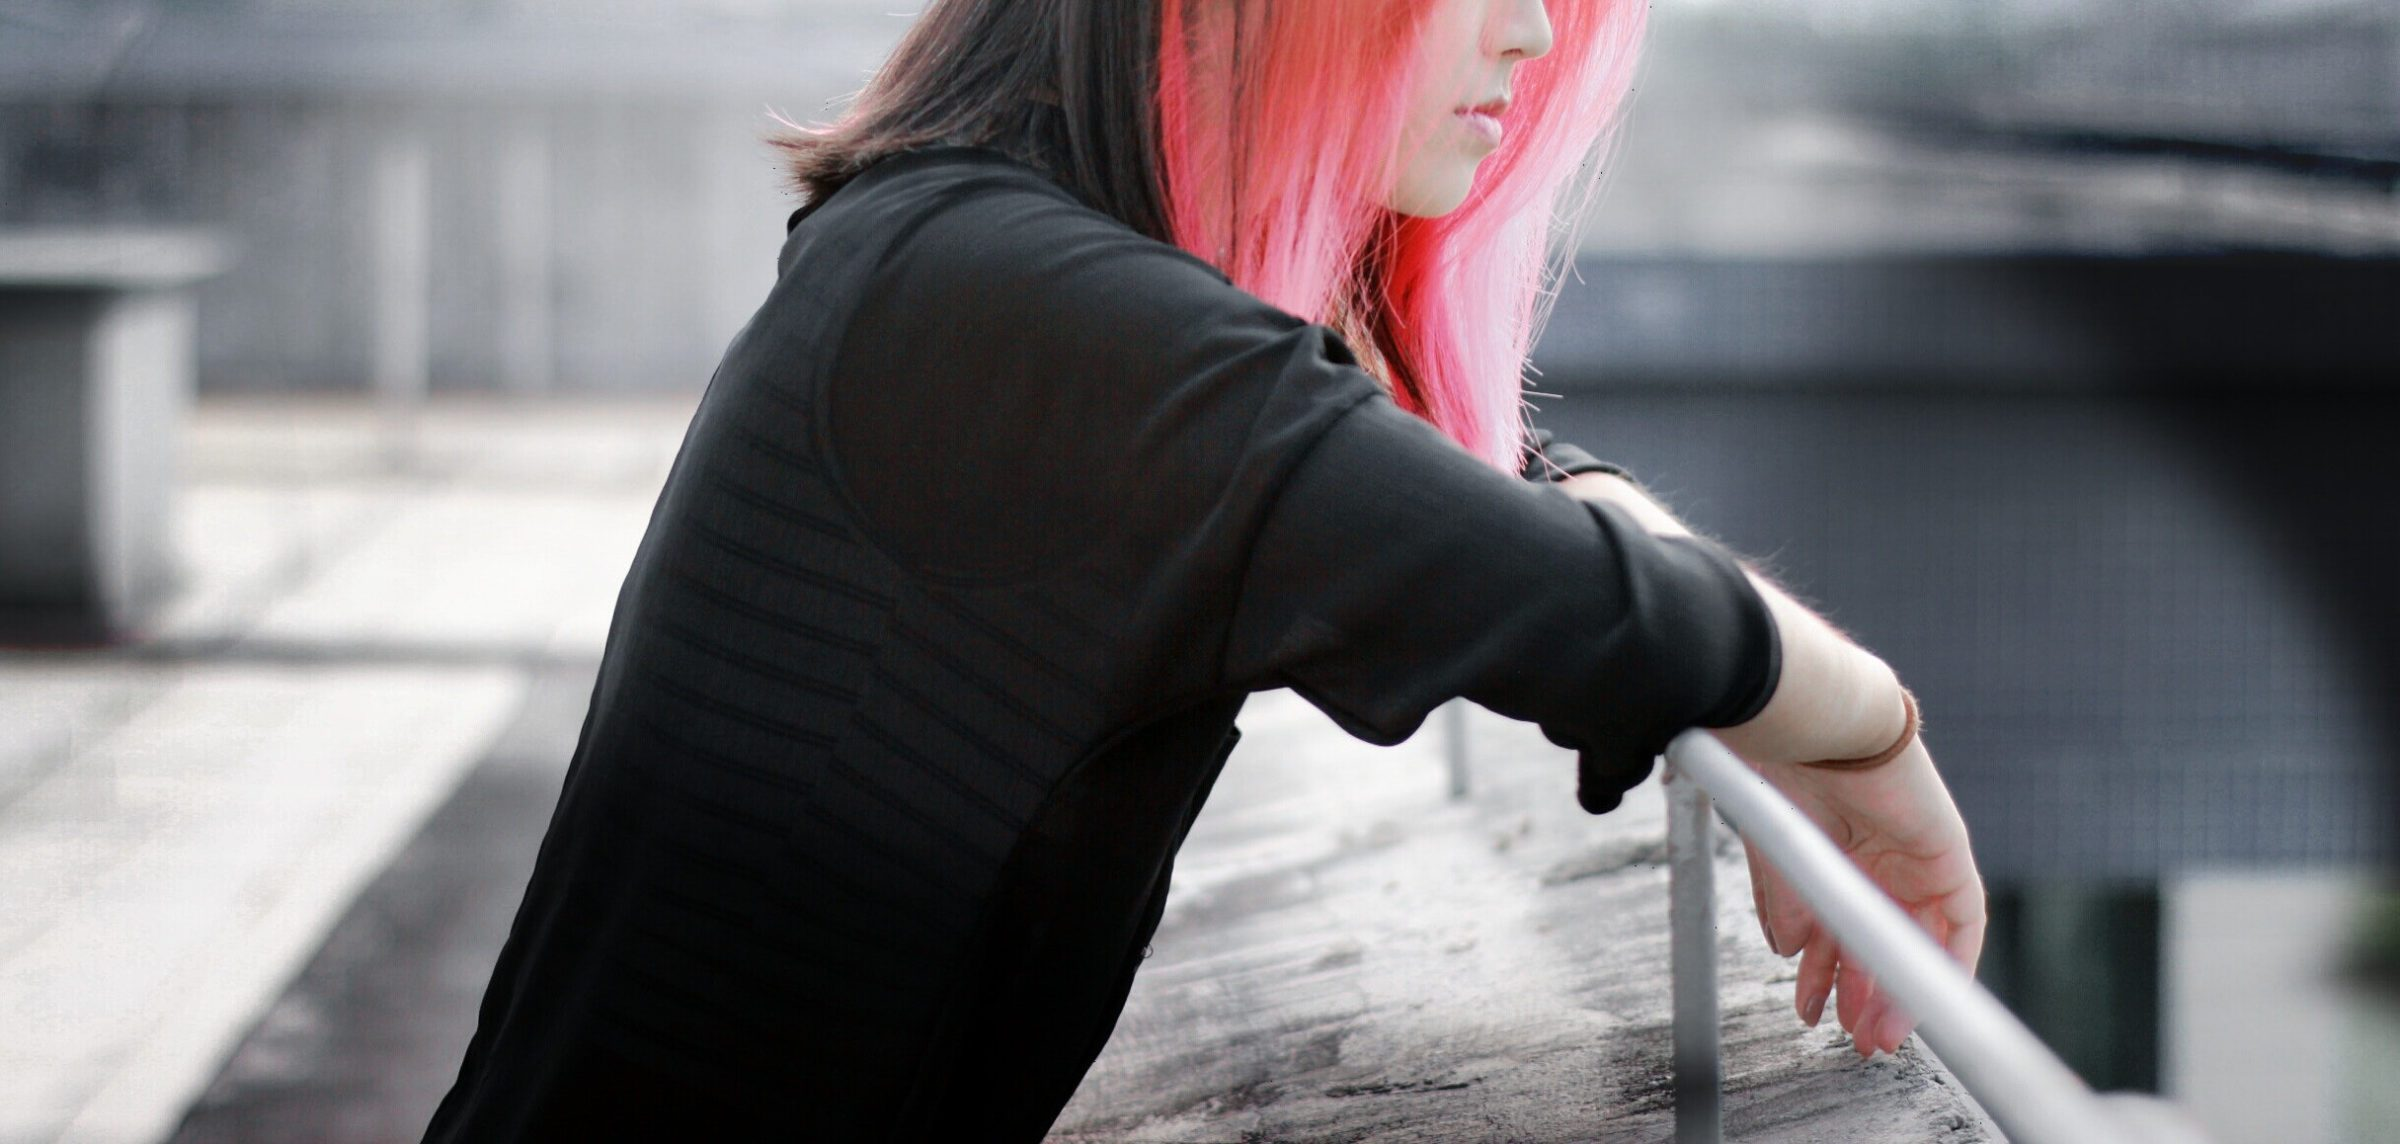 woman with pink hair leaning over railing